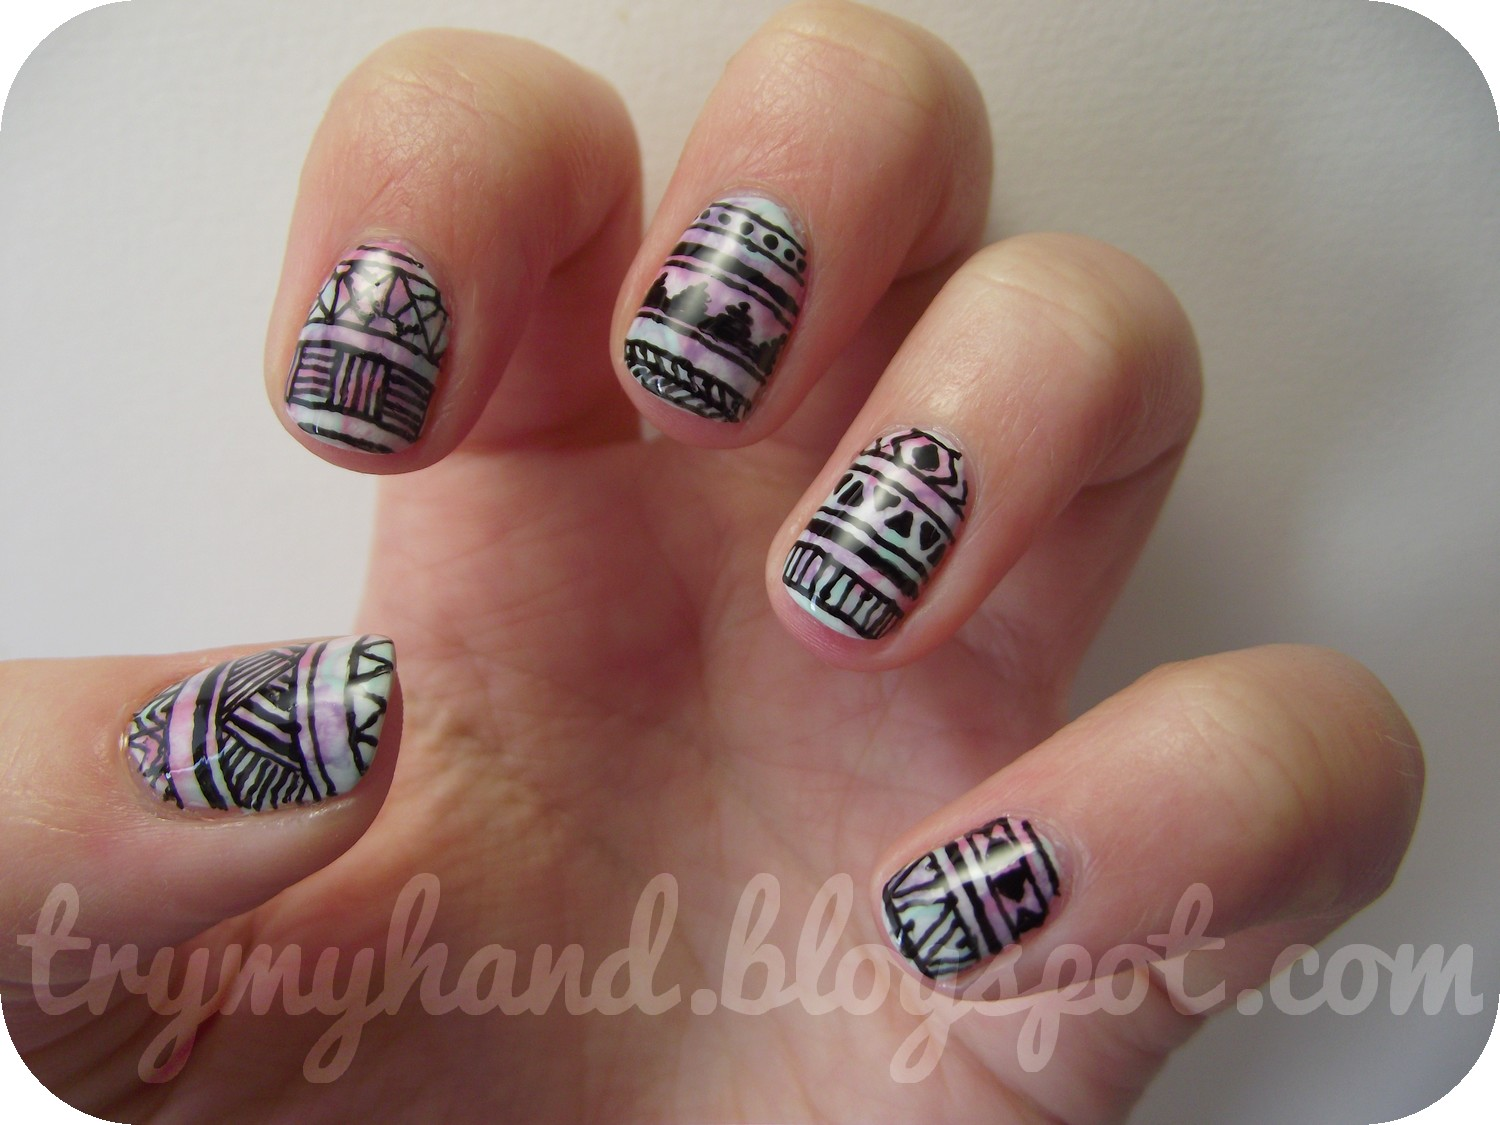 Try my hand alphabet nail art challenge a for aztec alphabet nail art challenge a for aztec prinsesfo Choice Image